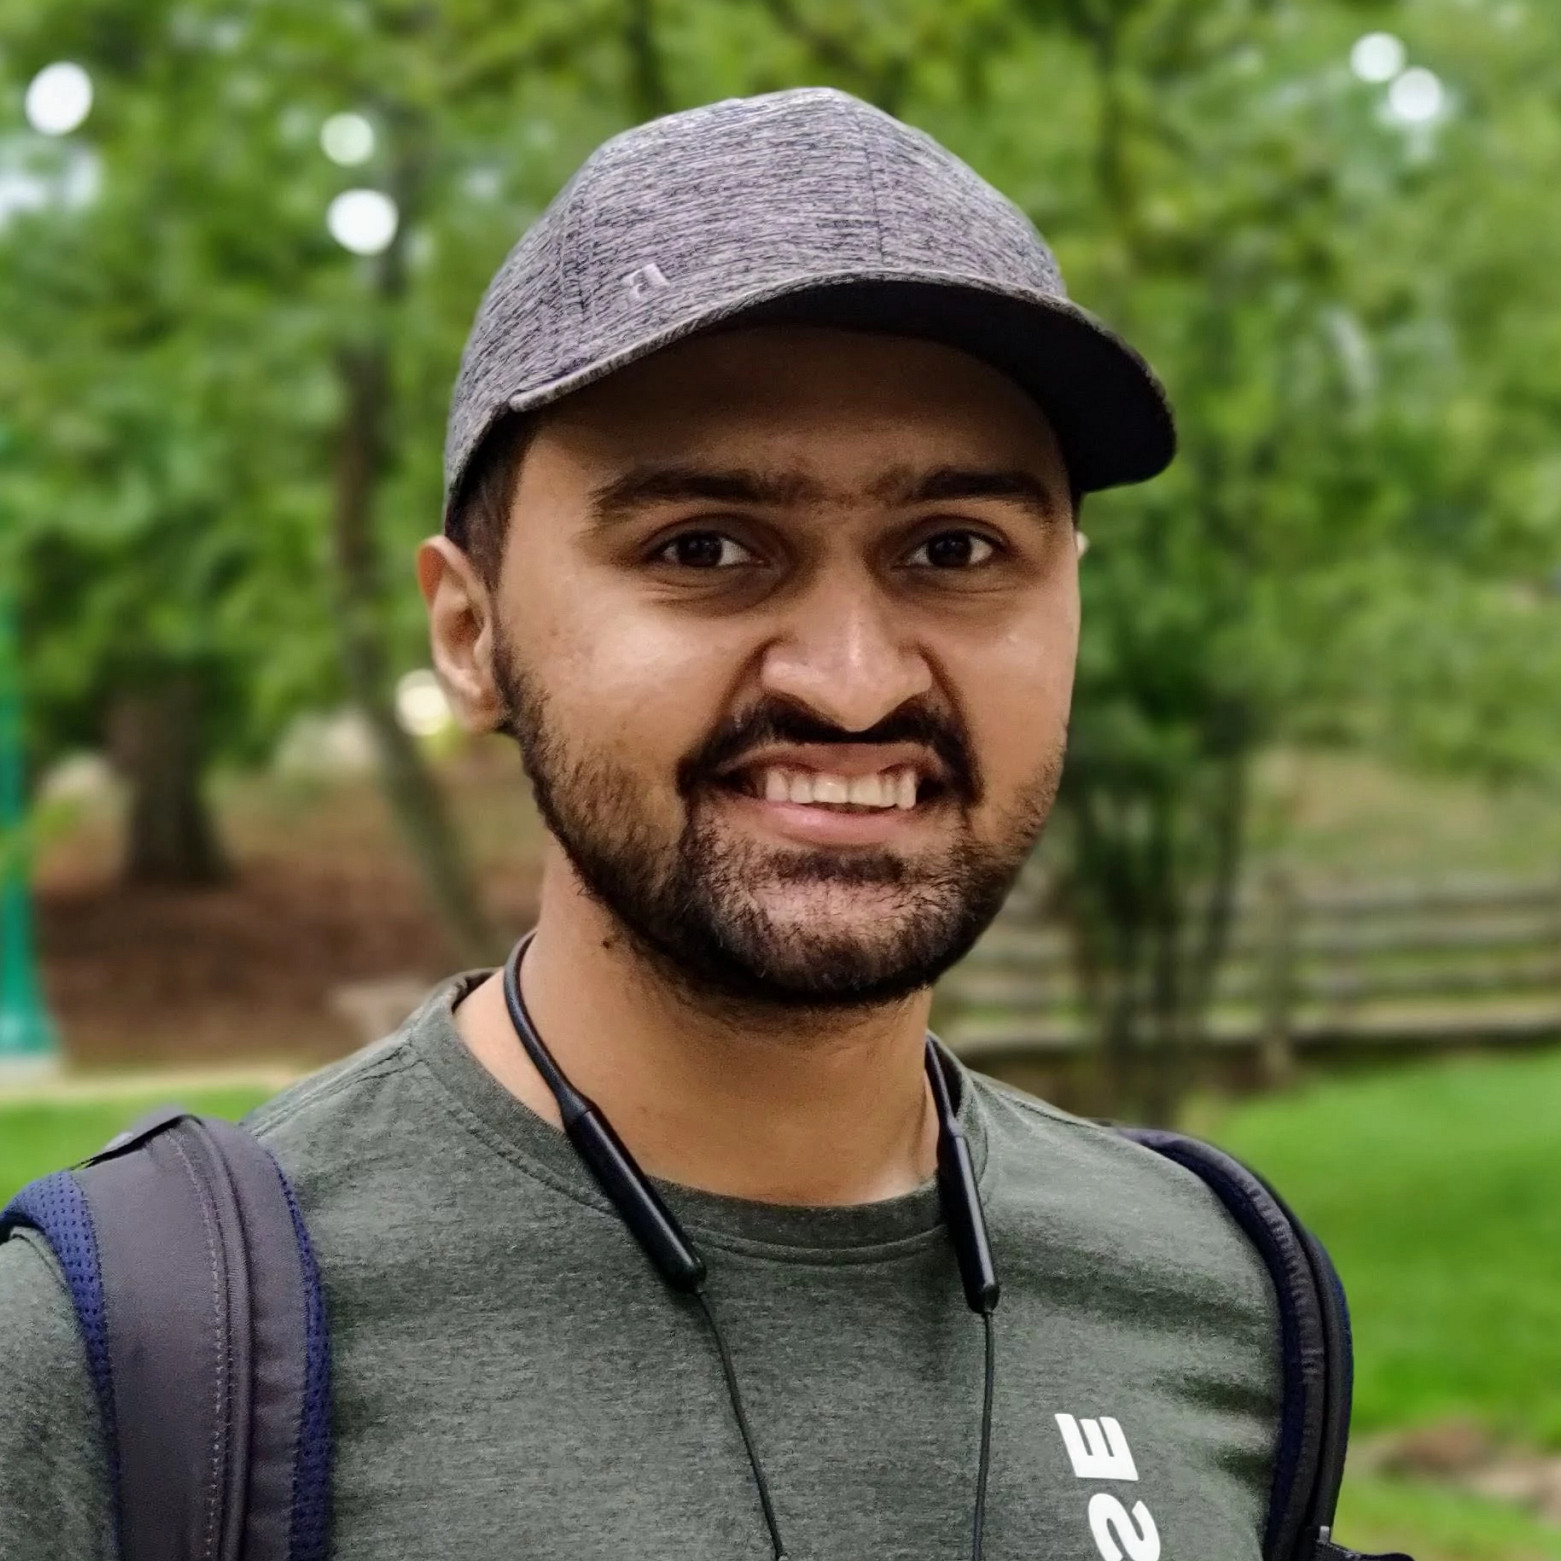 Sagar Vasnani stands outside on the IU Bloomington campus